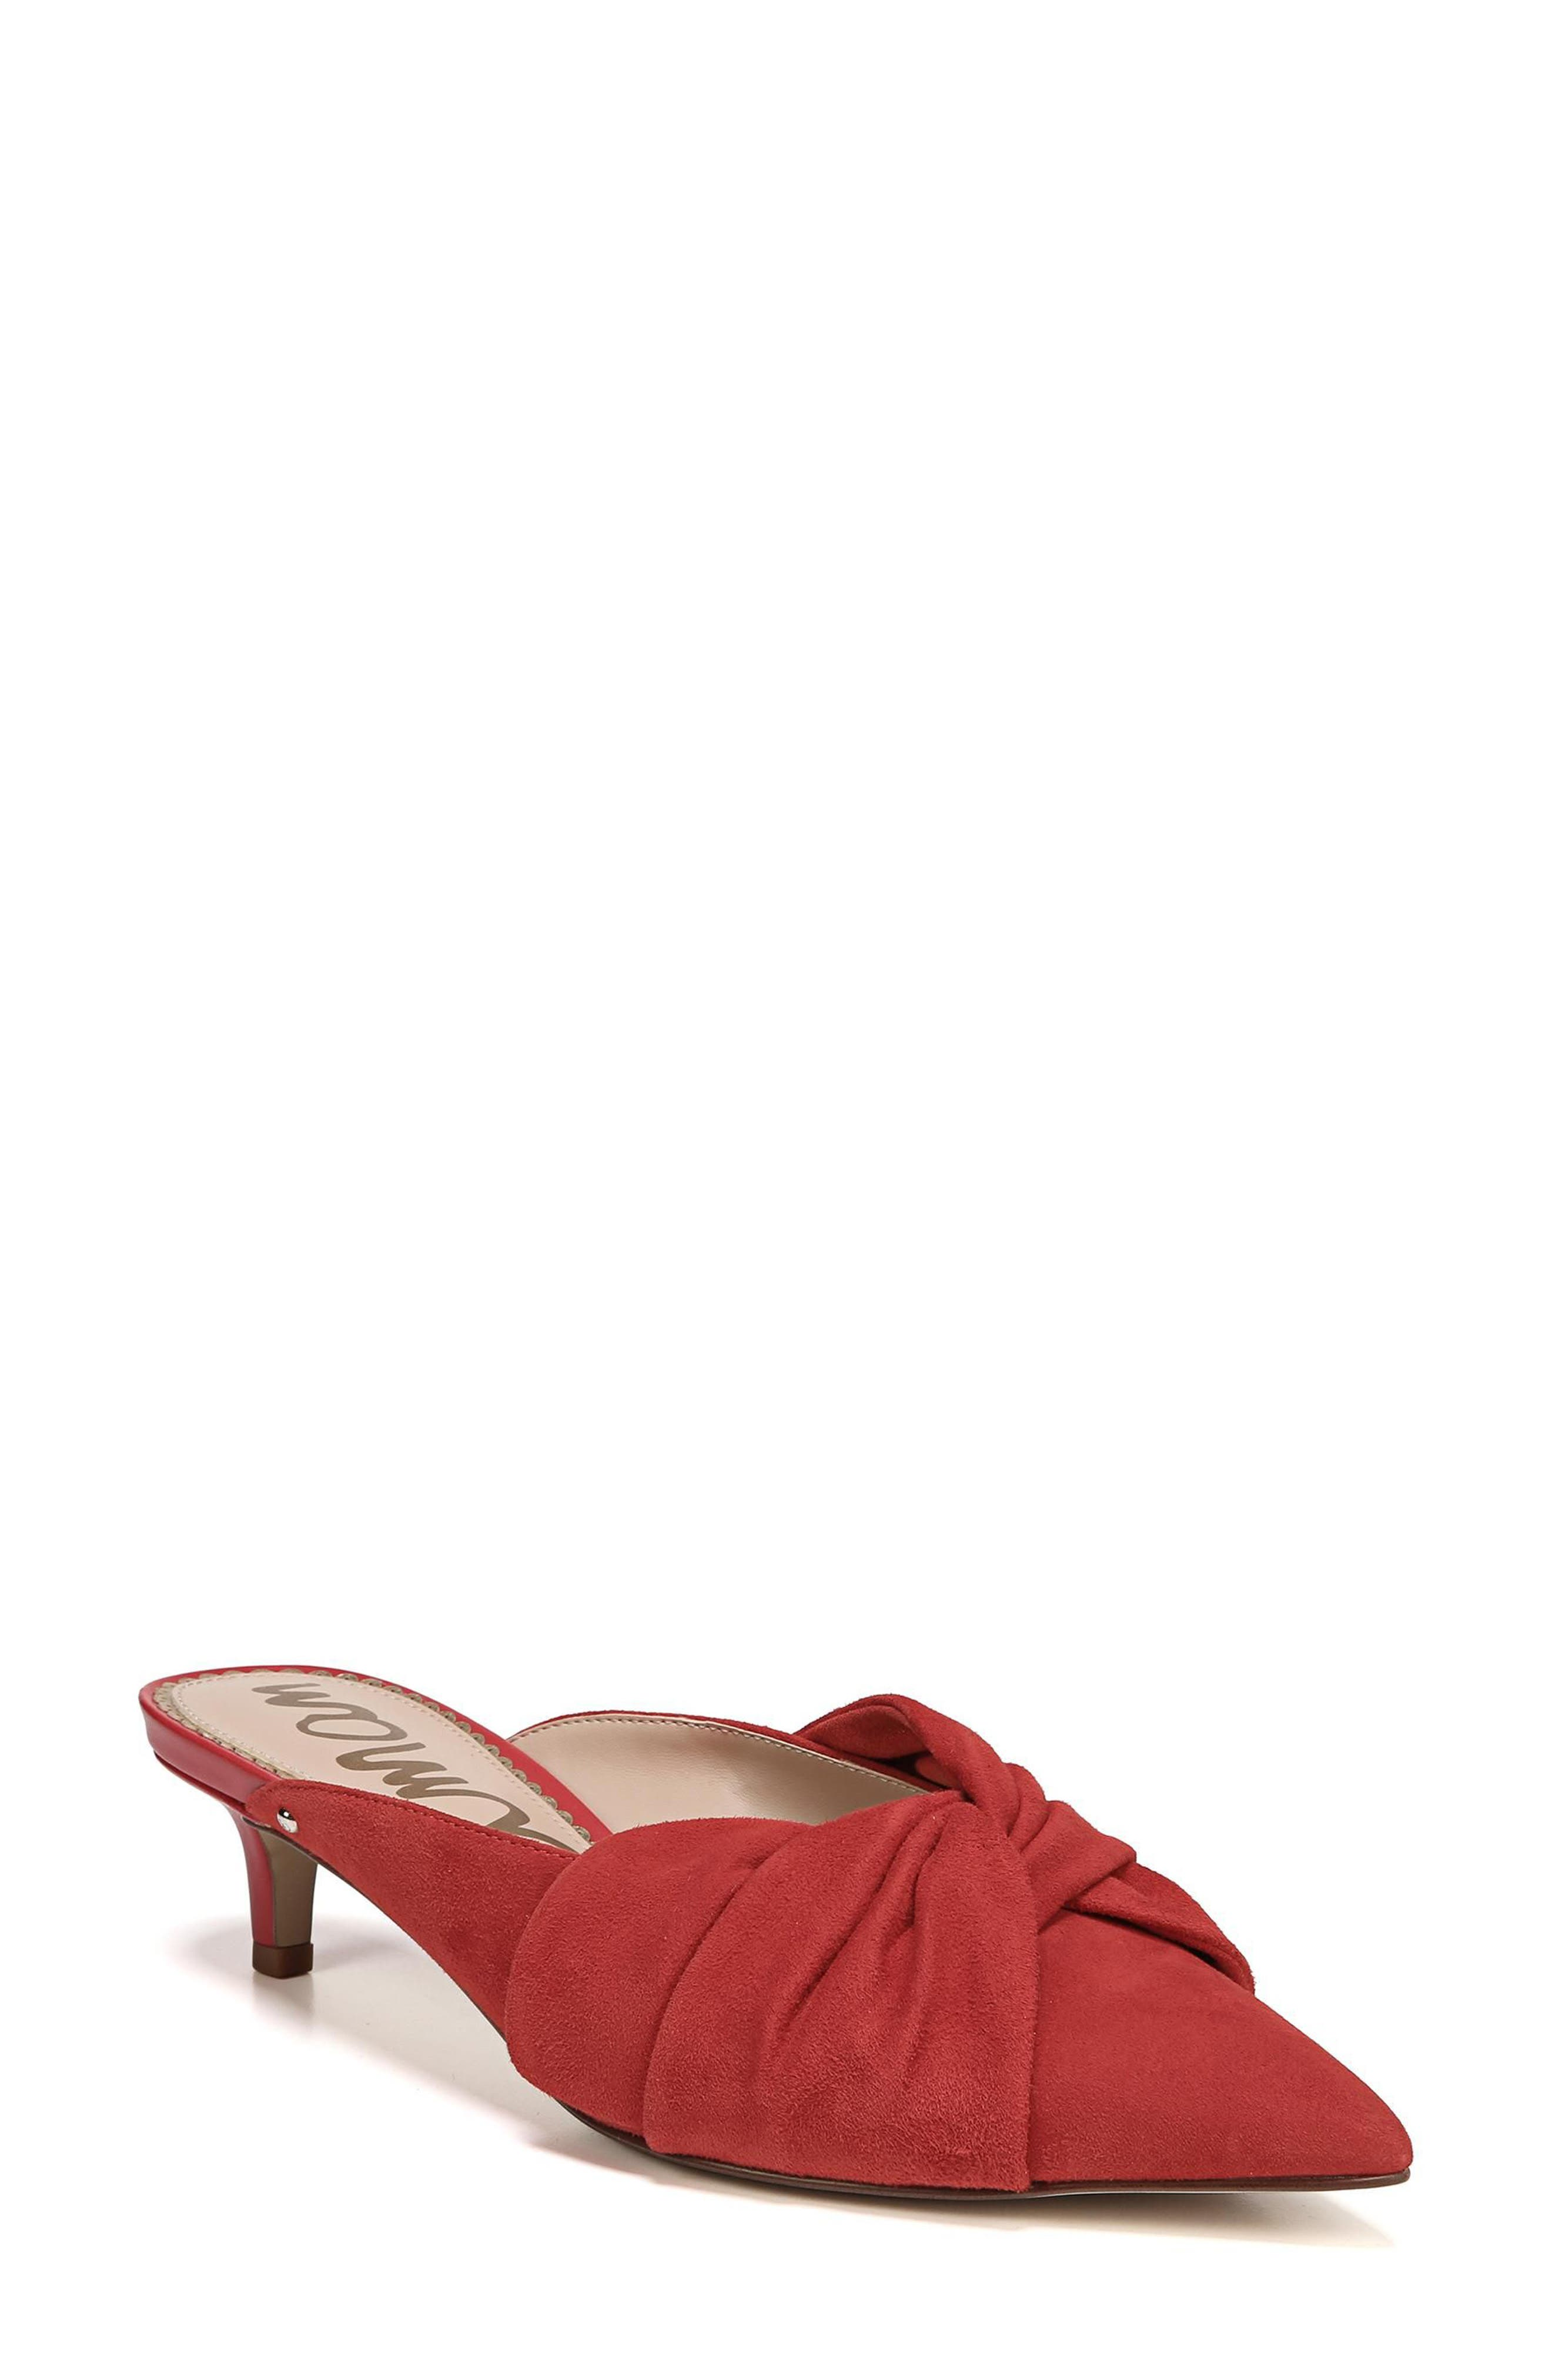 Laney Pointy Toe Mule,                         Main,                         color, Candy Red Suede